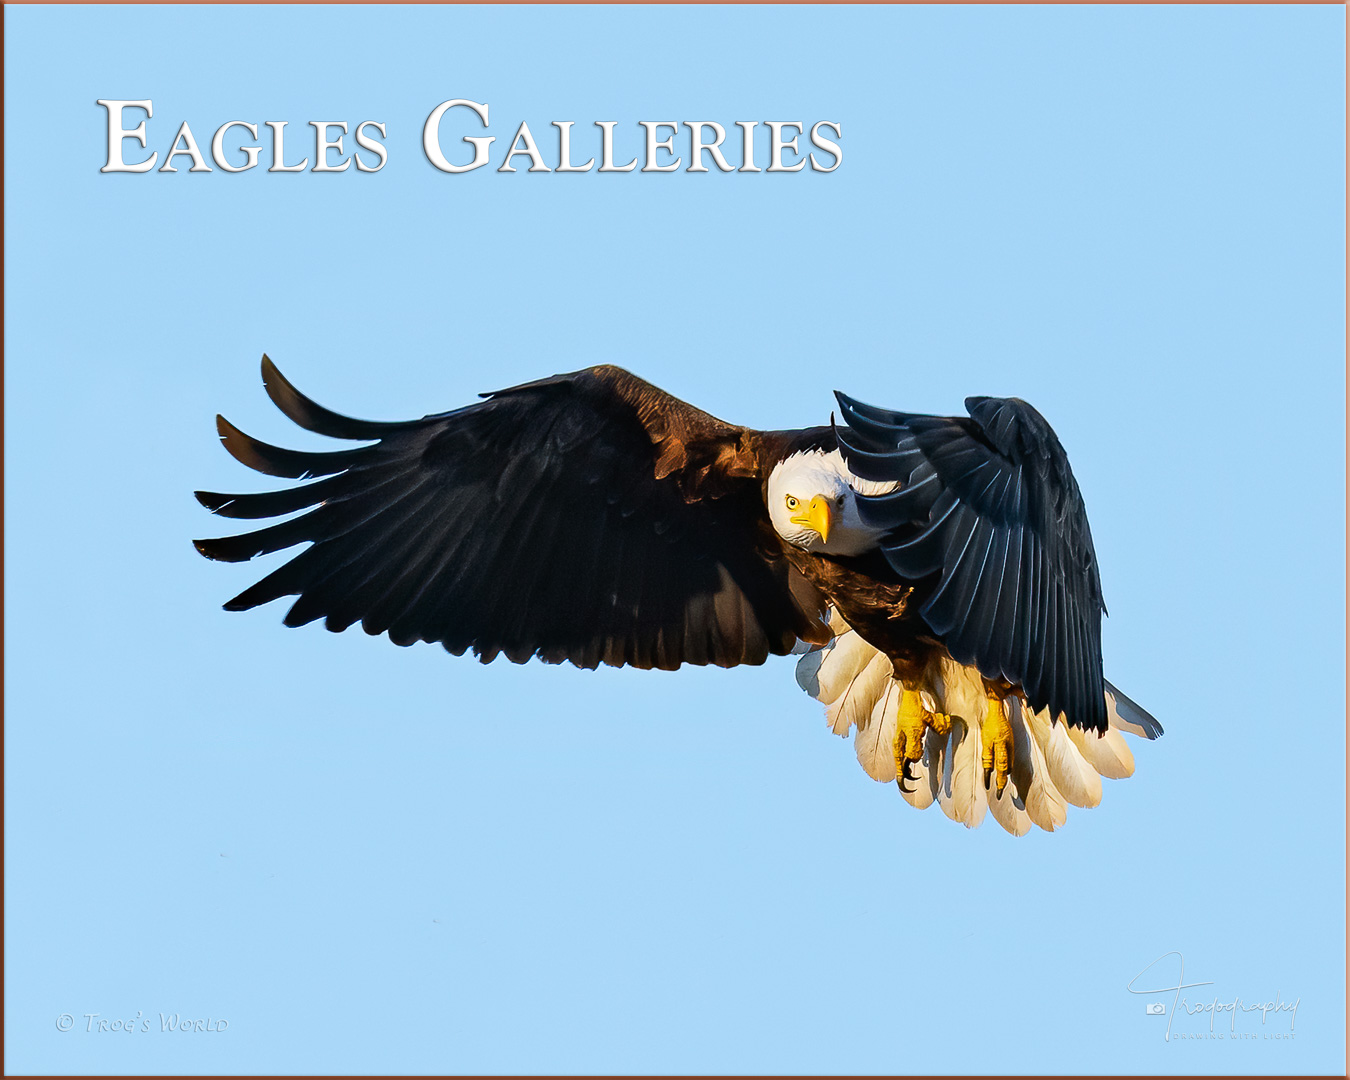 Bald Eagle in flight giving the stare